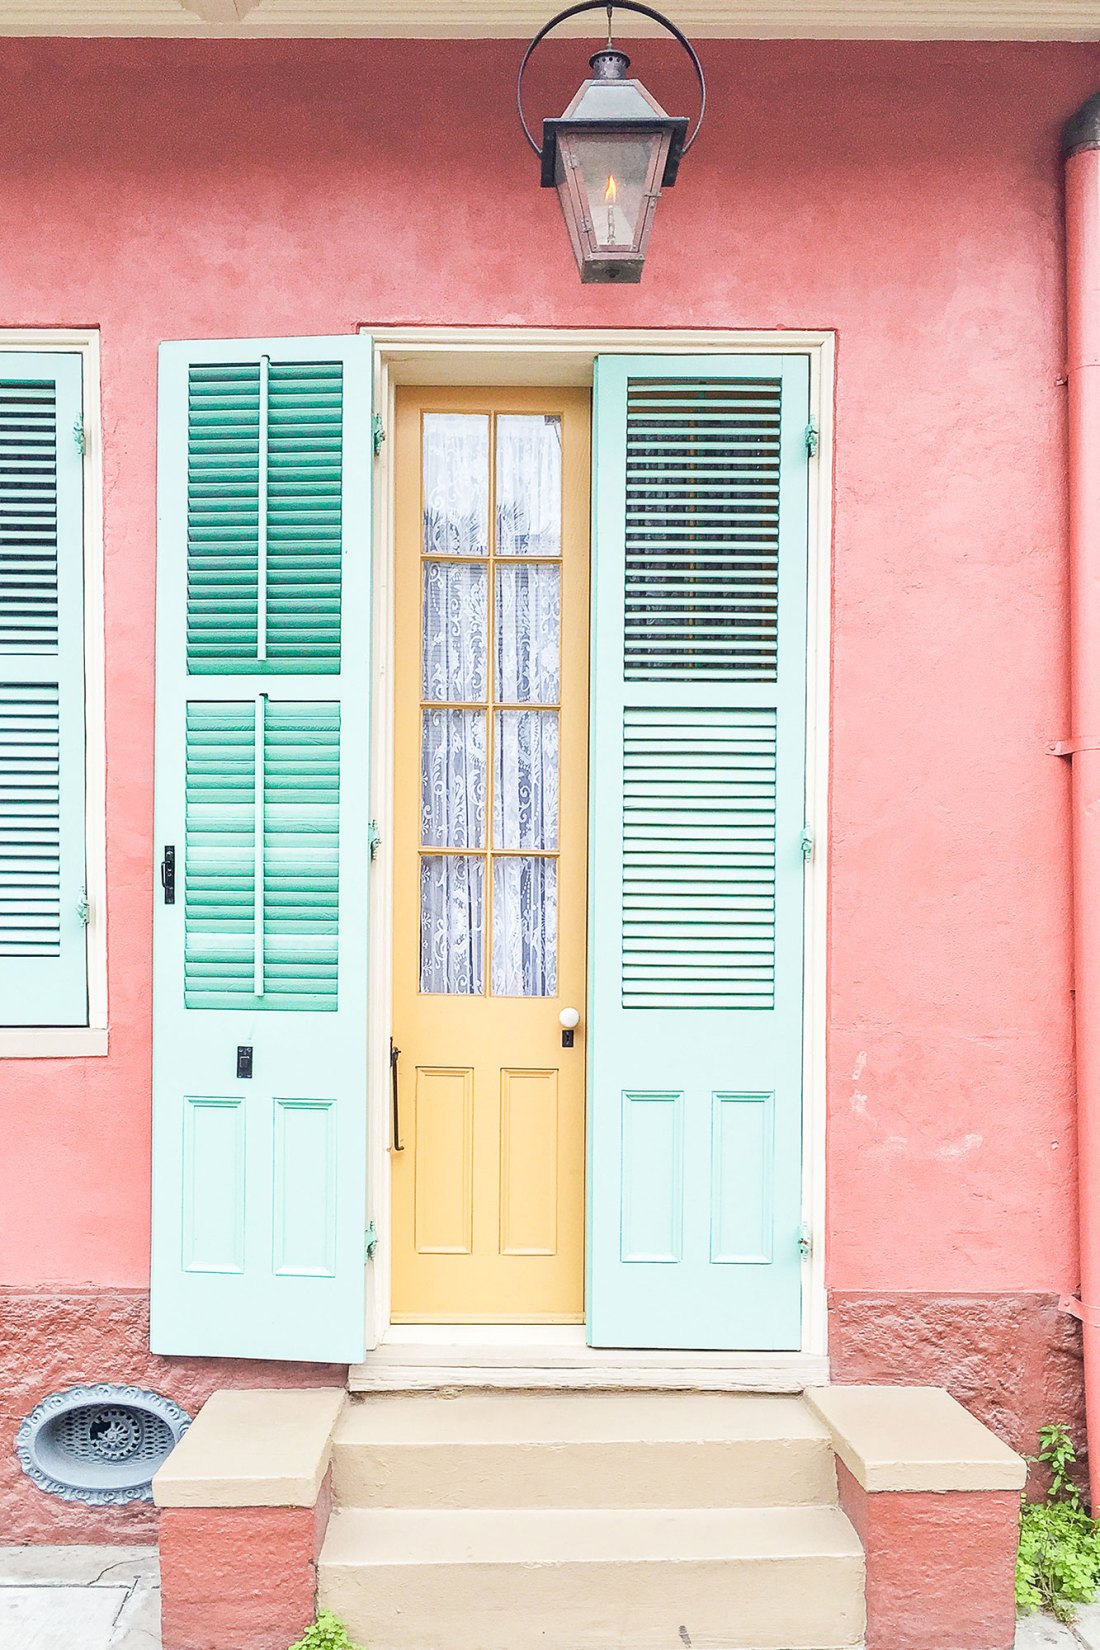 Colorful Doorway in New Orleans